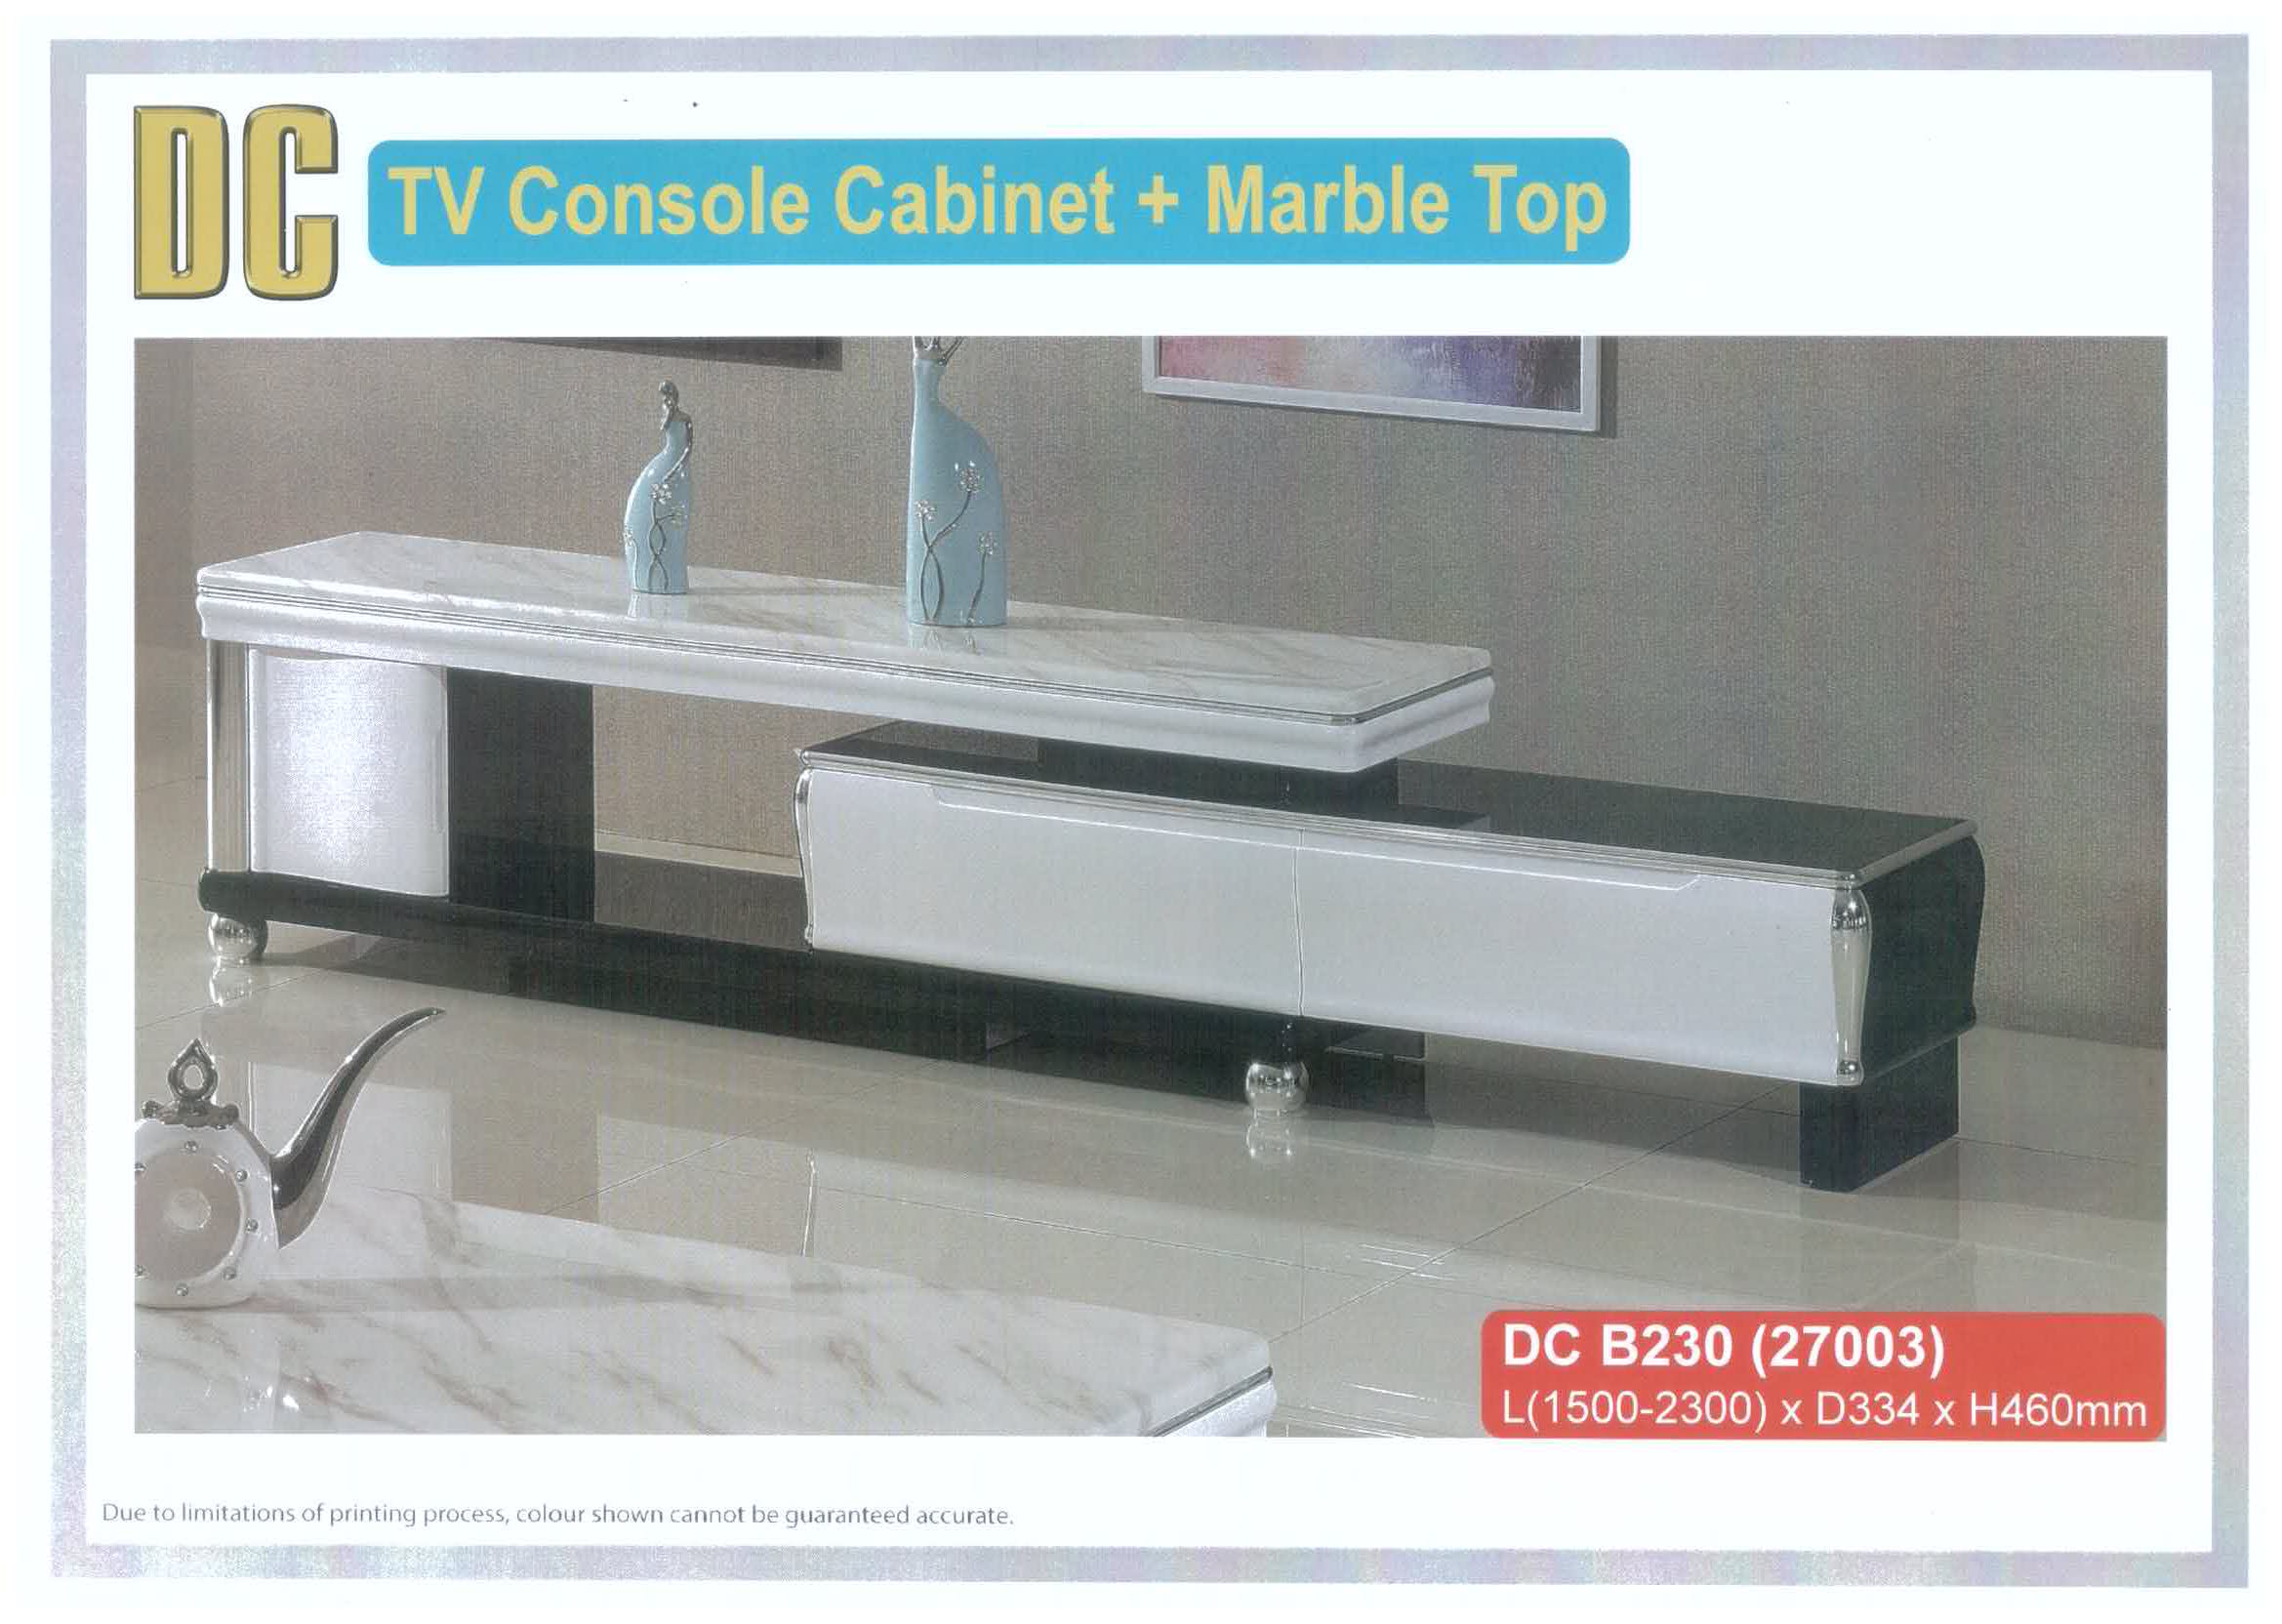 Tv Console Cabinet With Marble Top Dc B230 Universal